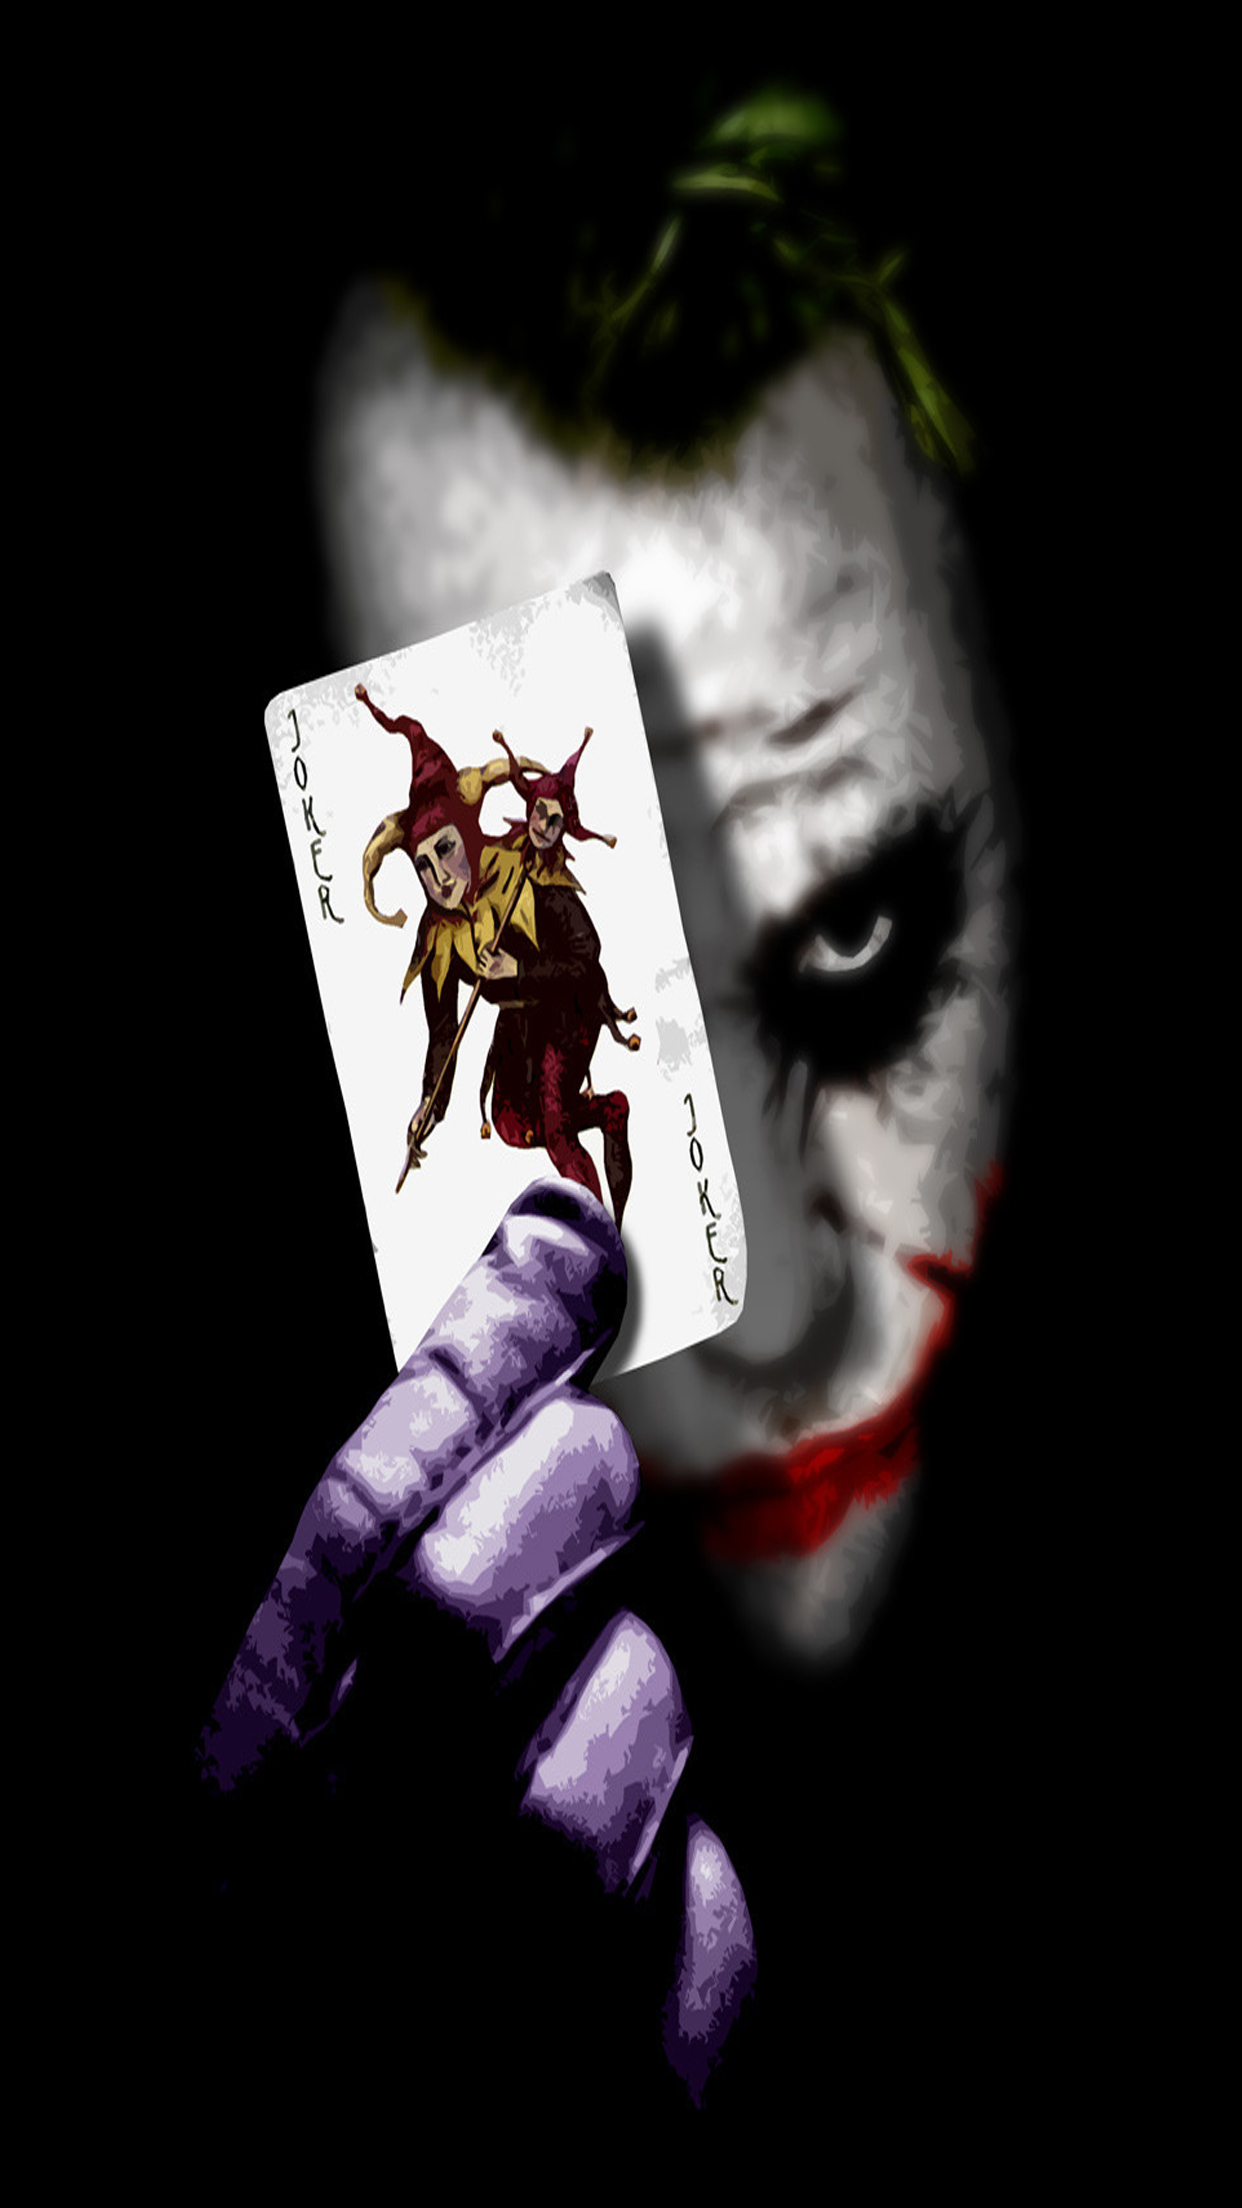 Joker card wallpaper for iphone x 8 7 6 free download on 3wallpapers - Joker brand wallpaper ...